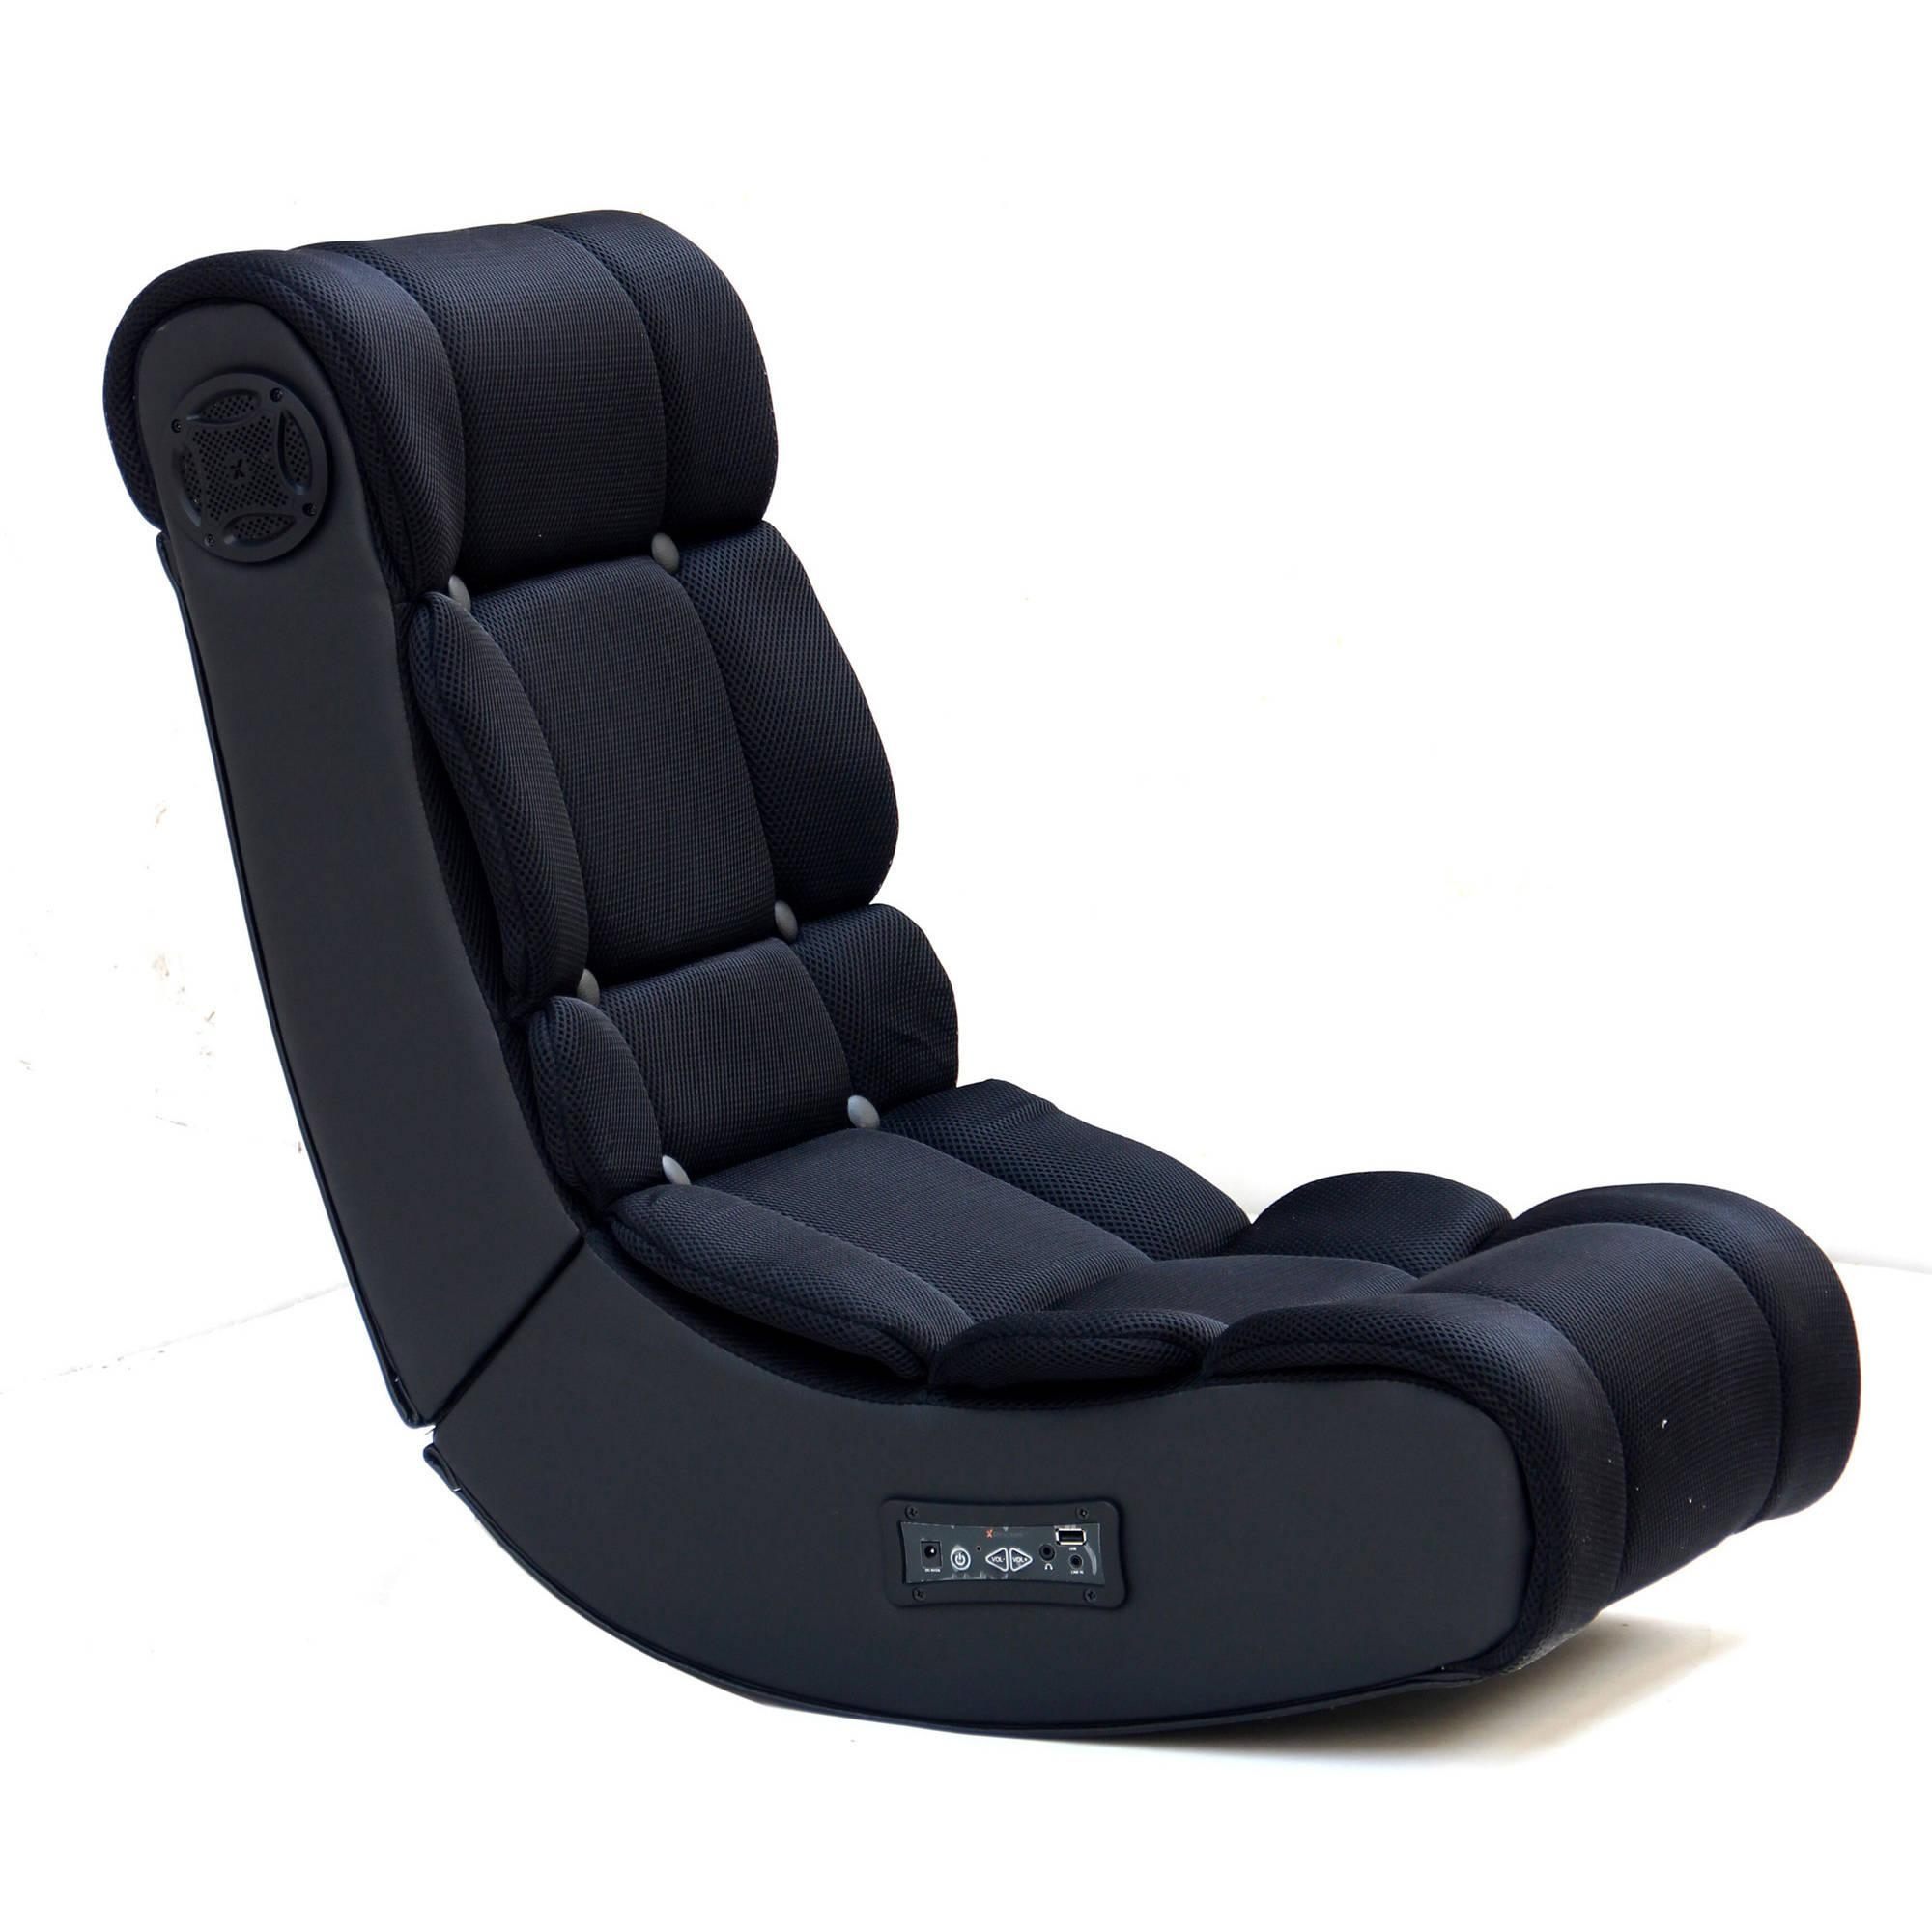 Game Chair With Speakers Sofa Ideas Gaming Sofa Chairs Explore 5 Of 20 Photos